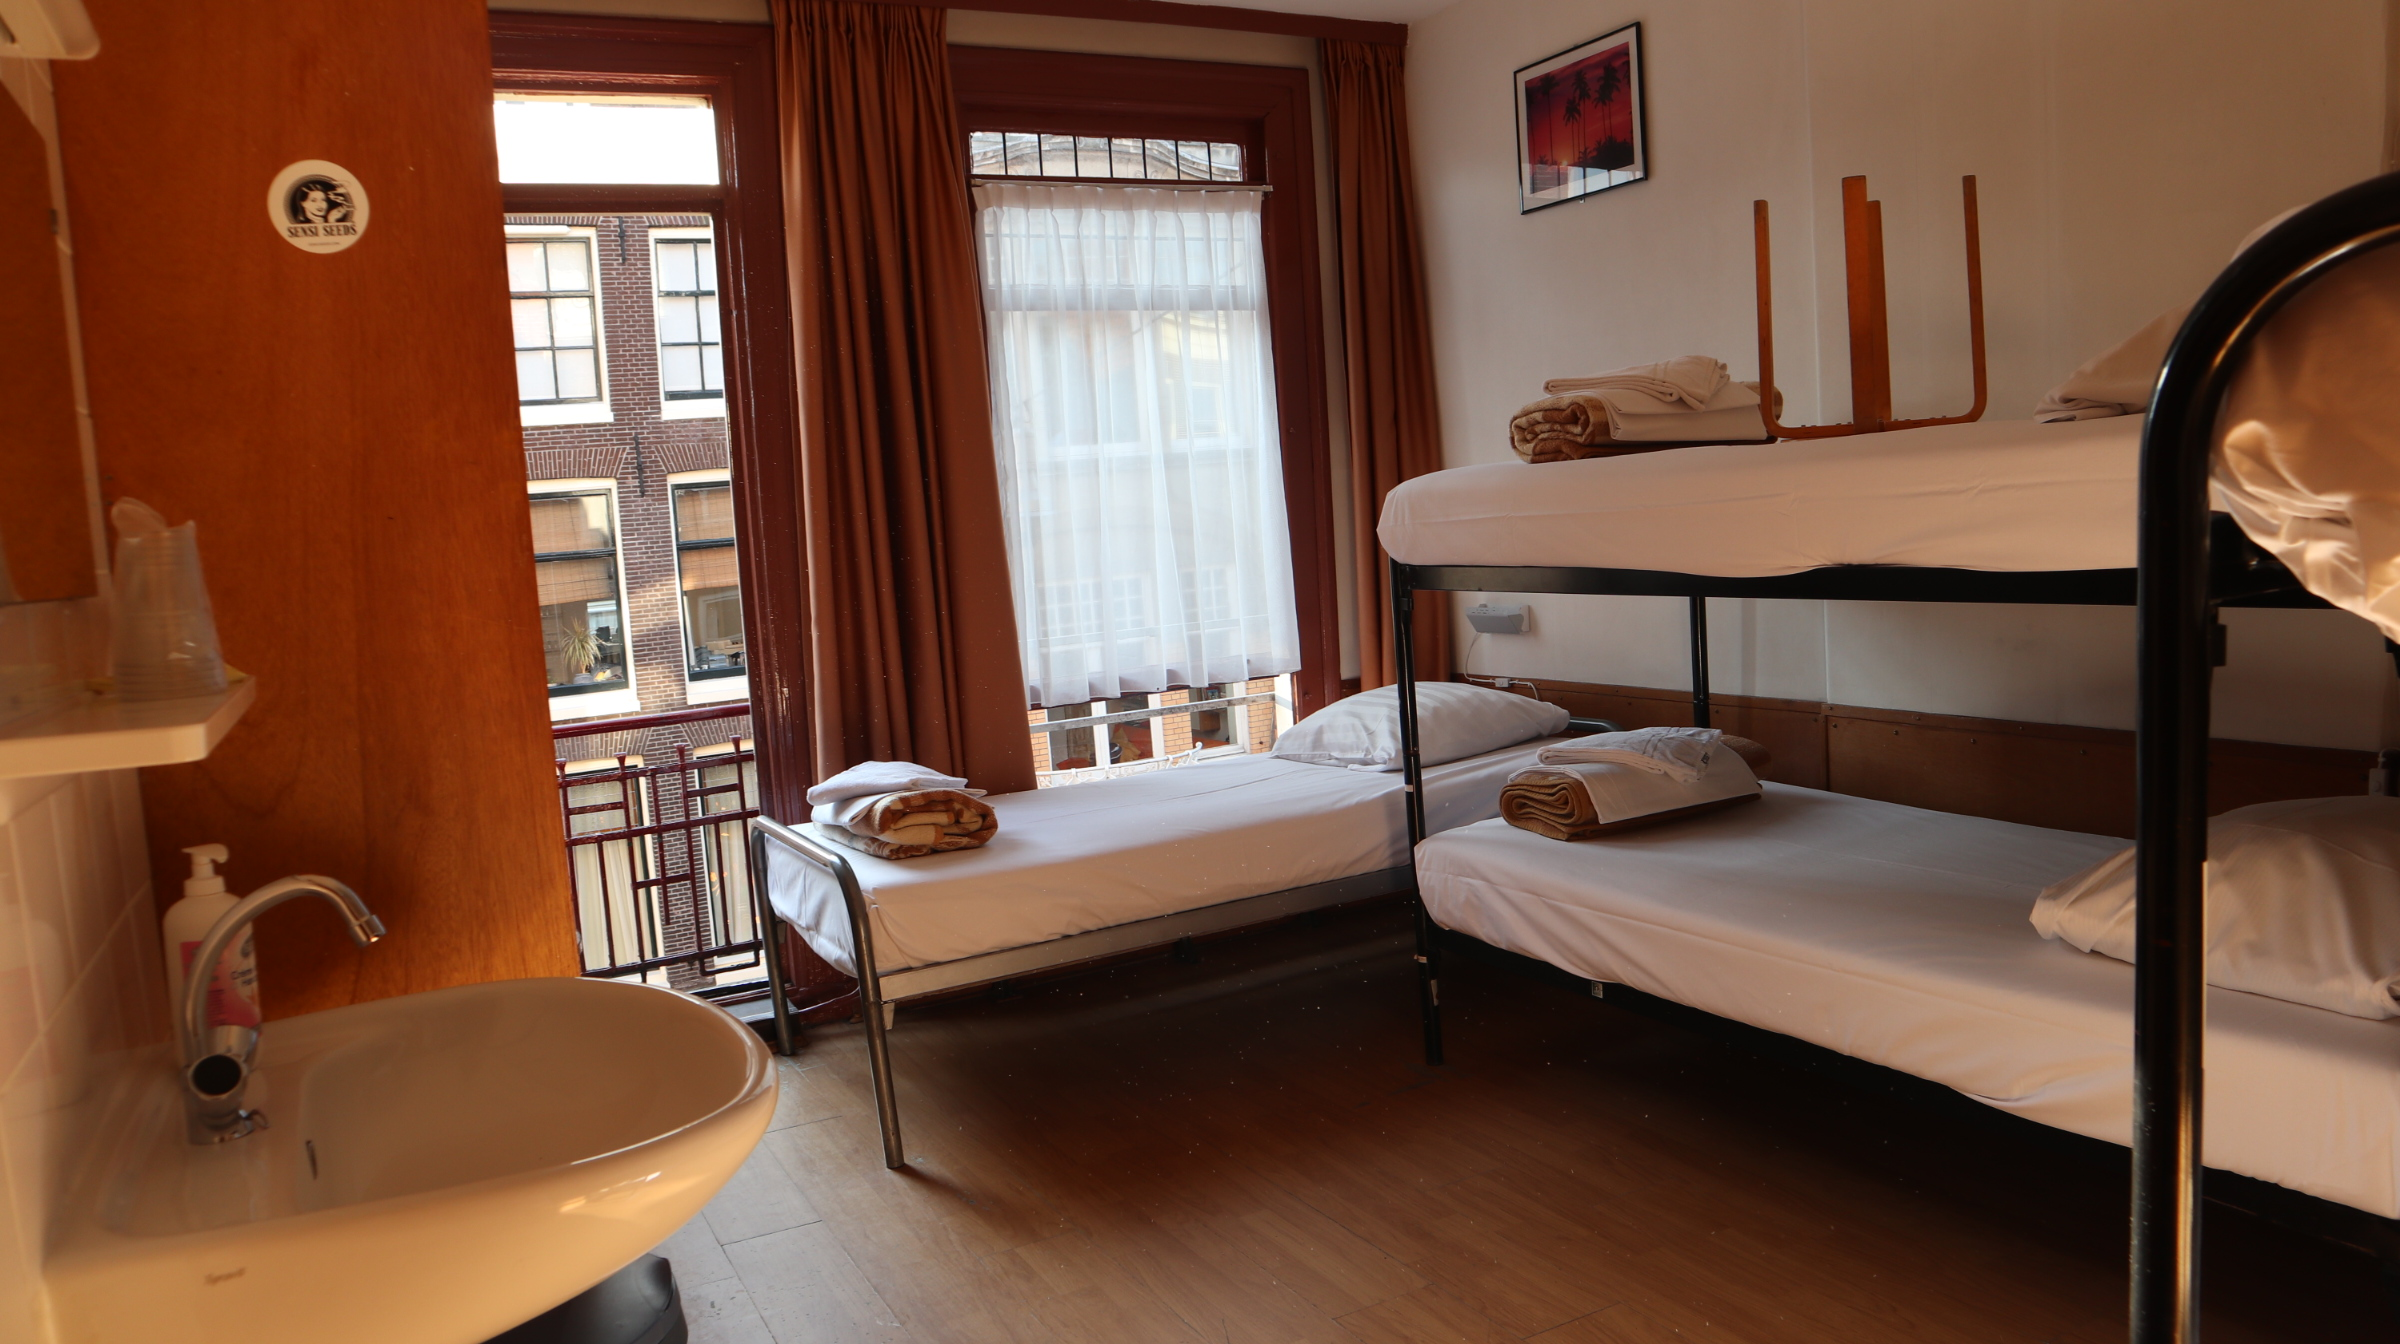 Amsterdam Budget hotel - 5 beds room